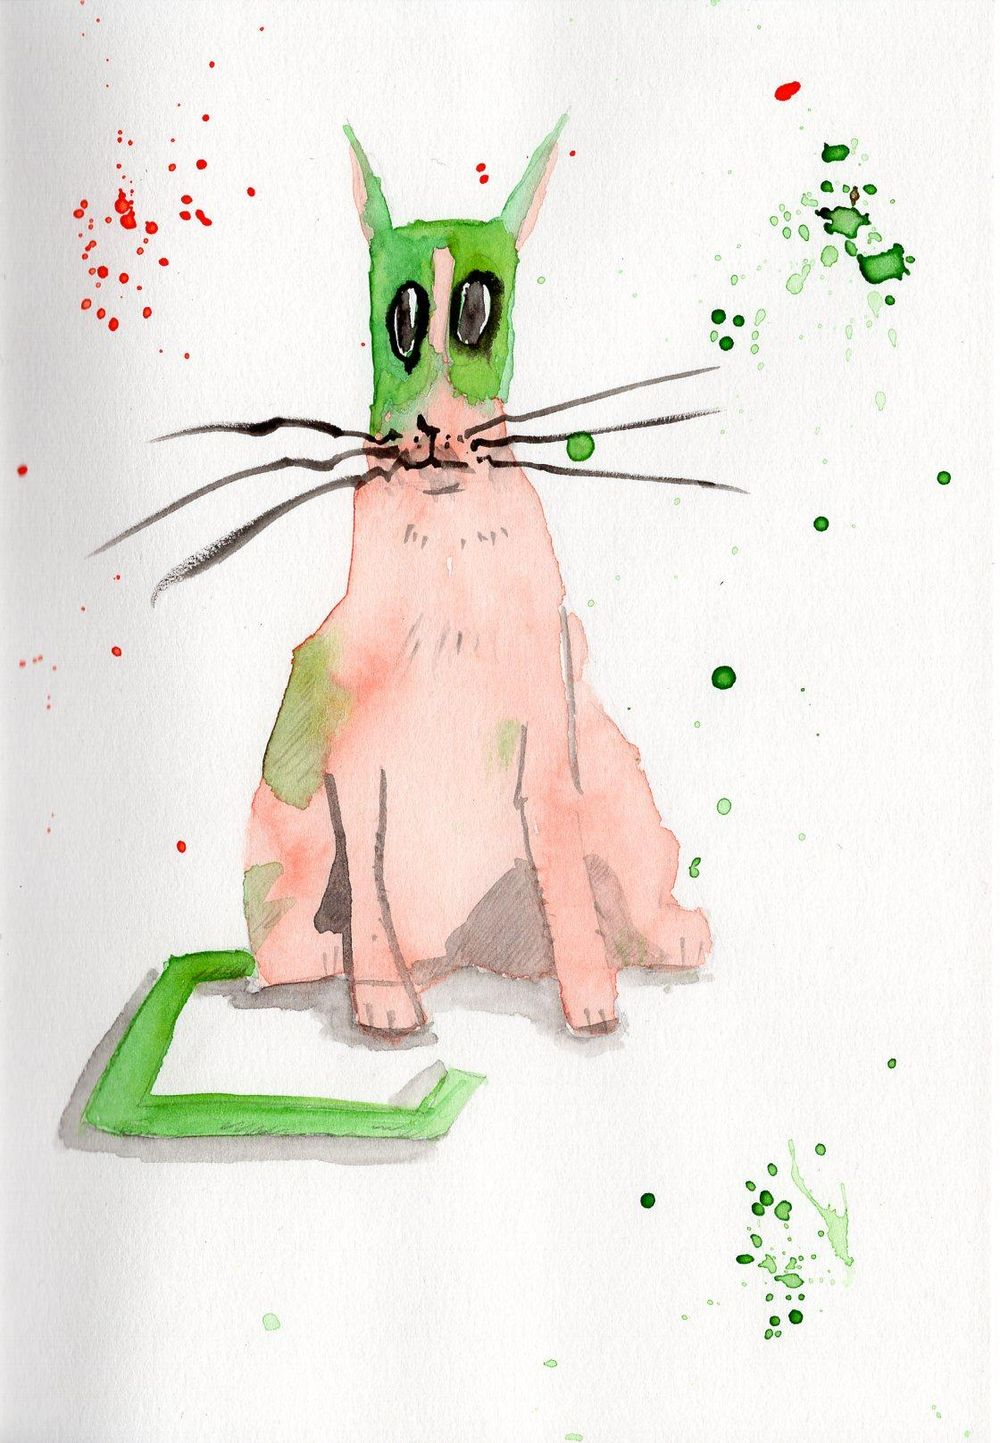 Fun with cats, ink & watercolor - image 4 - student project